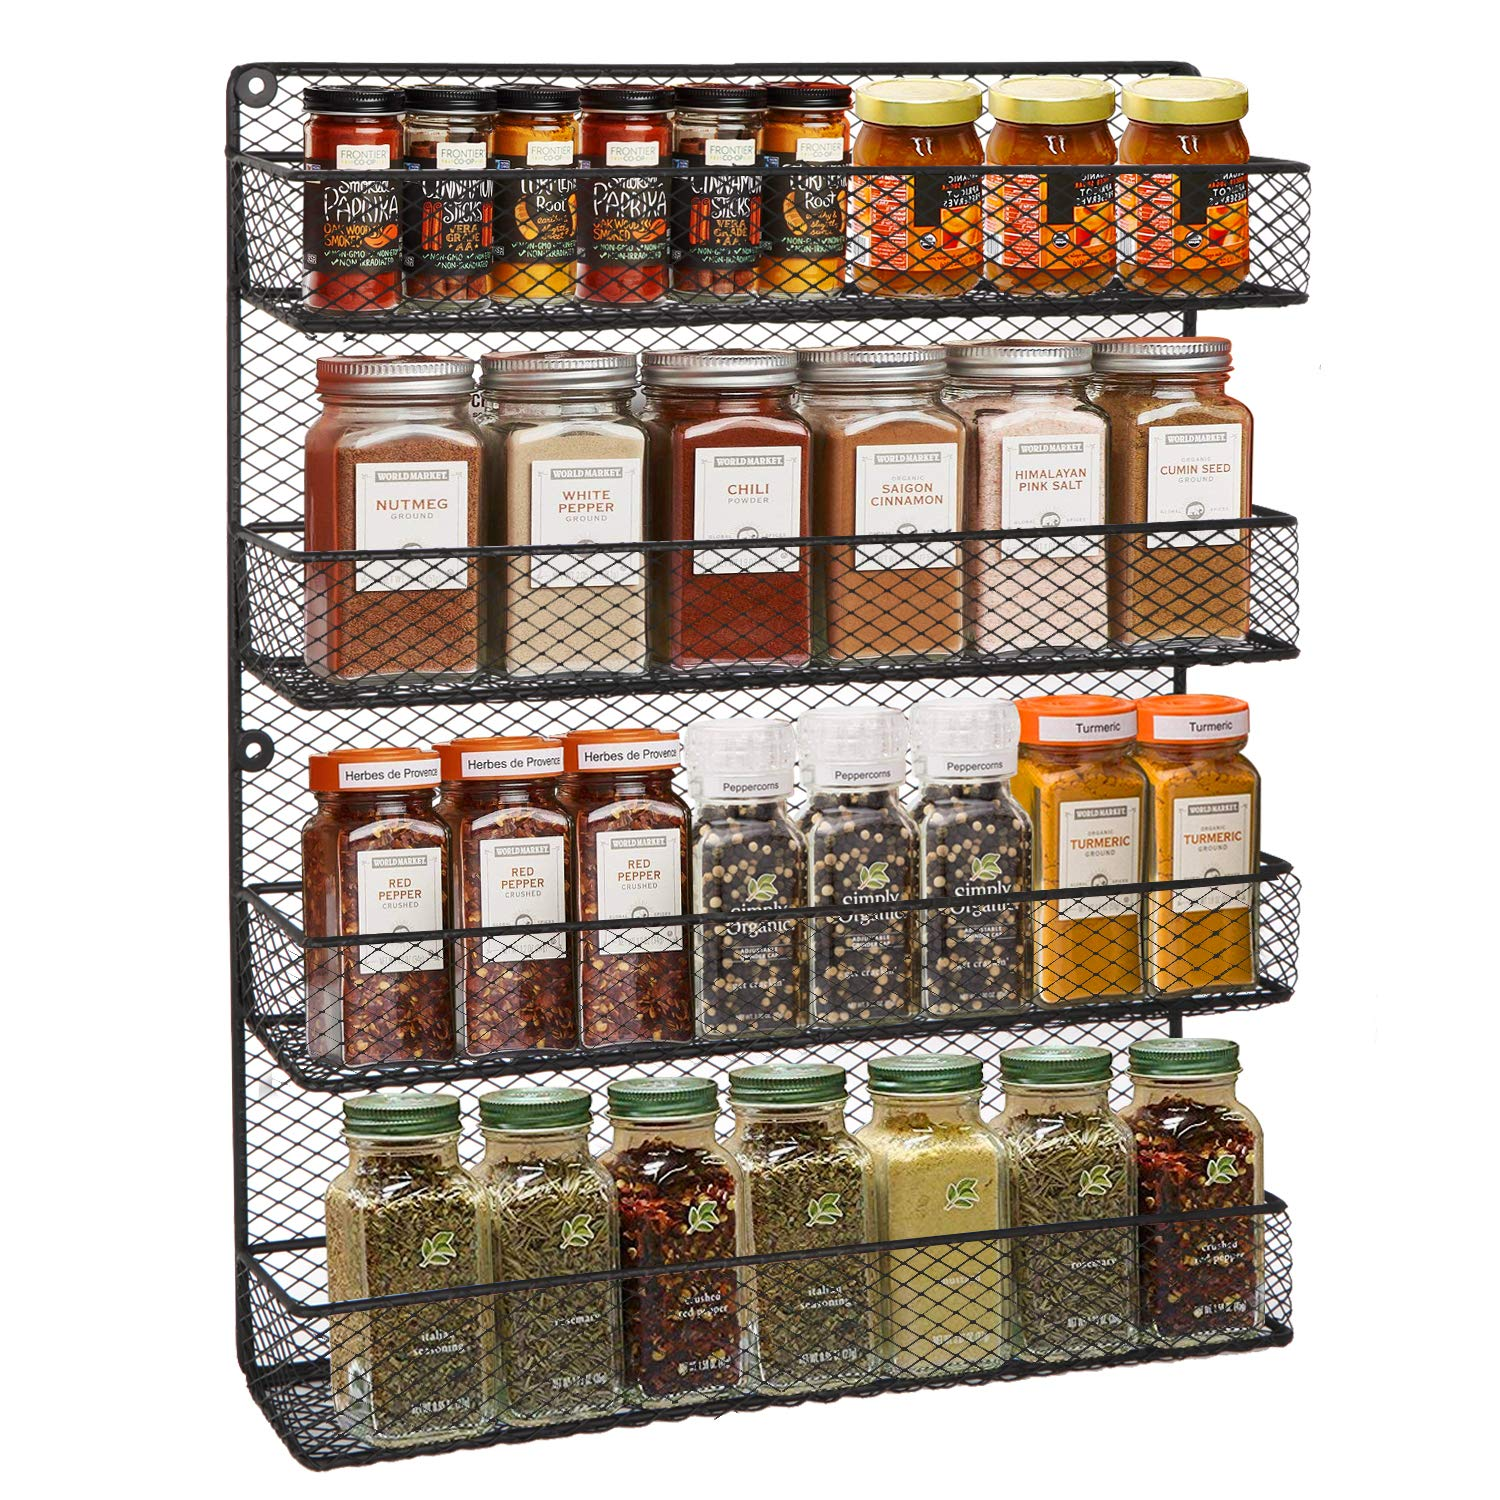 BBBuy 4 Tier Spice Rack Organizer wall mounted Country Rustic Chicken Holder Large Cabinet or Wall Mounted Wire Pantry Storage Rack, Great for Storing Spices, Household stuffs